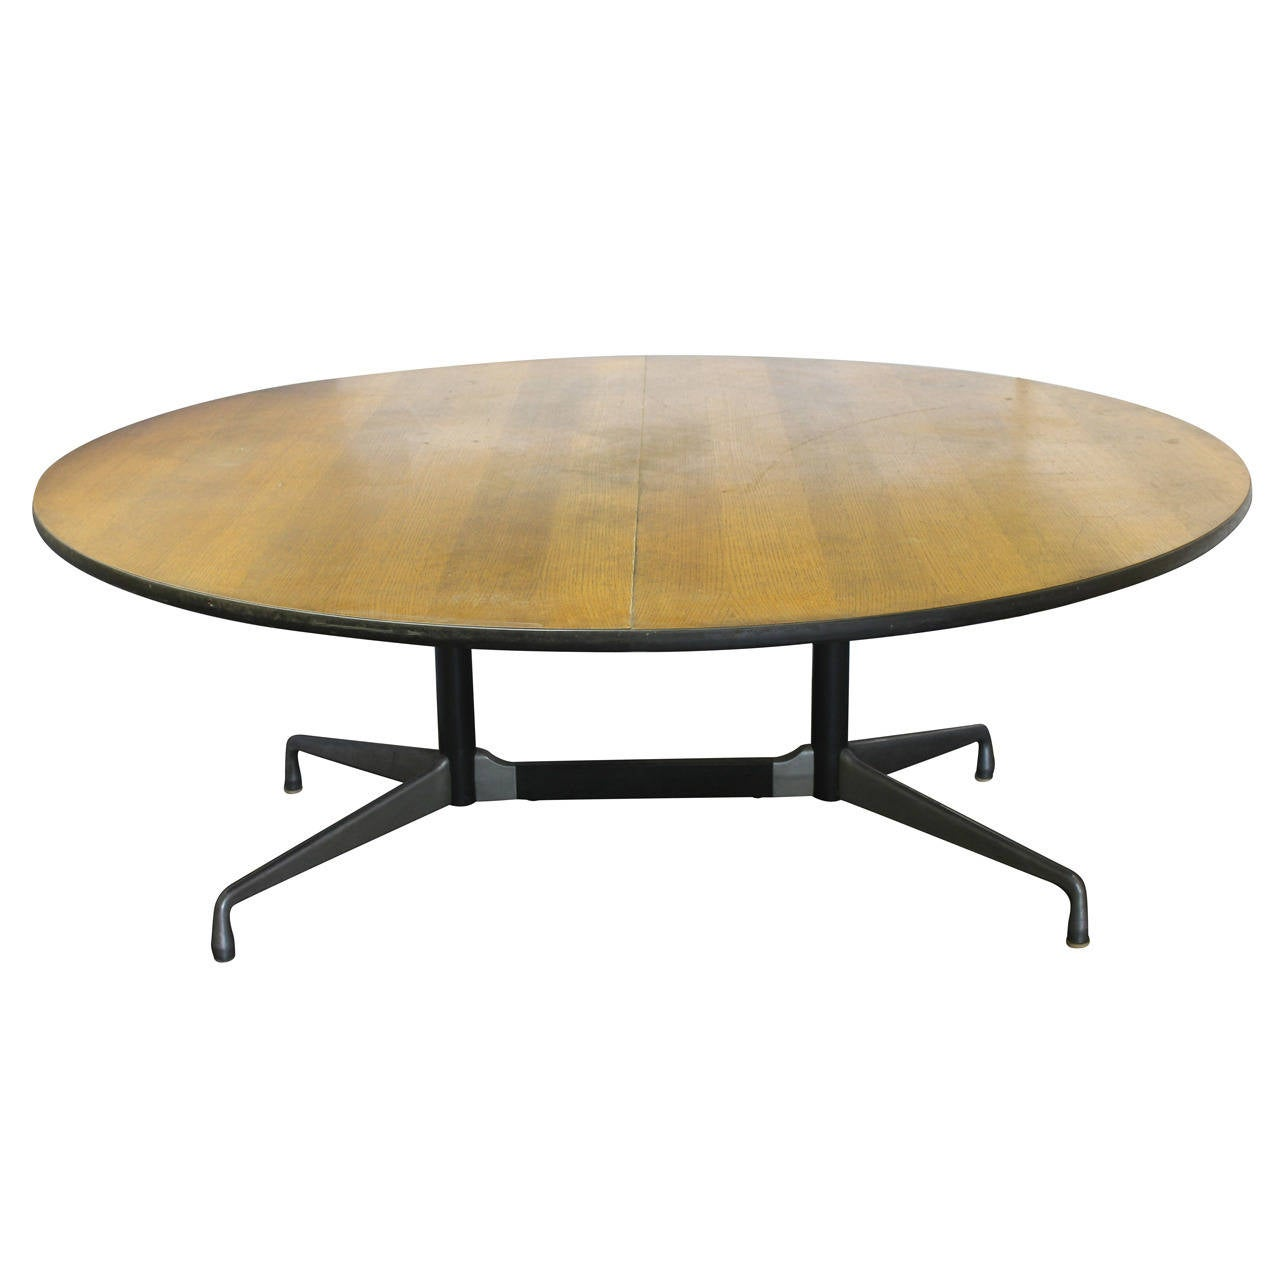 six foot dining round table by charles and ray eames for herman miller for sale at 1stdibs. Black Bedroom Furniture Sets. Home Design Ideas